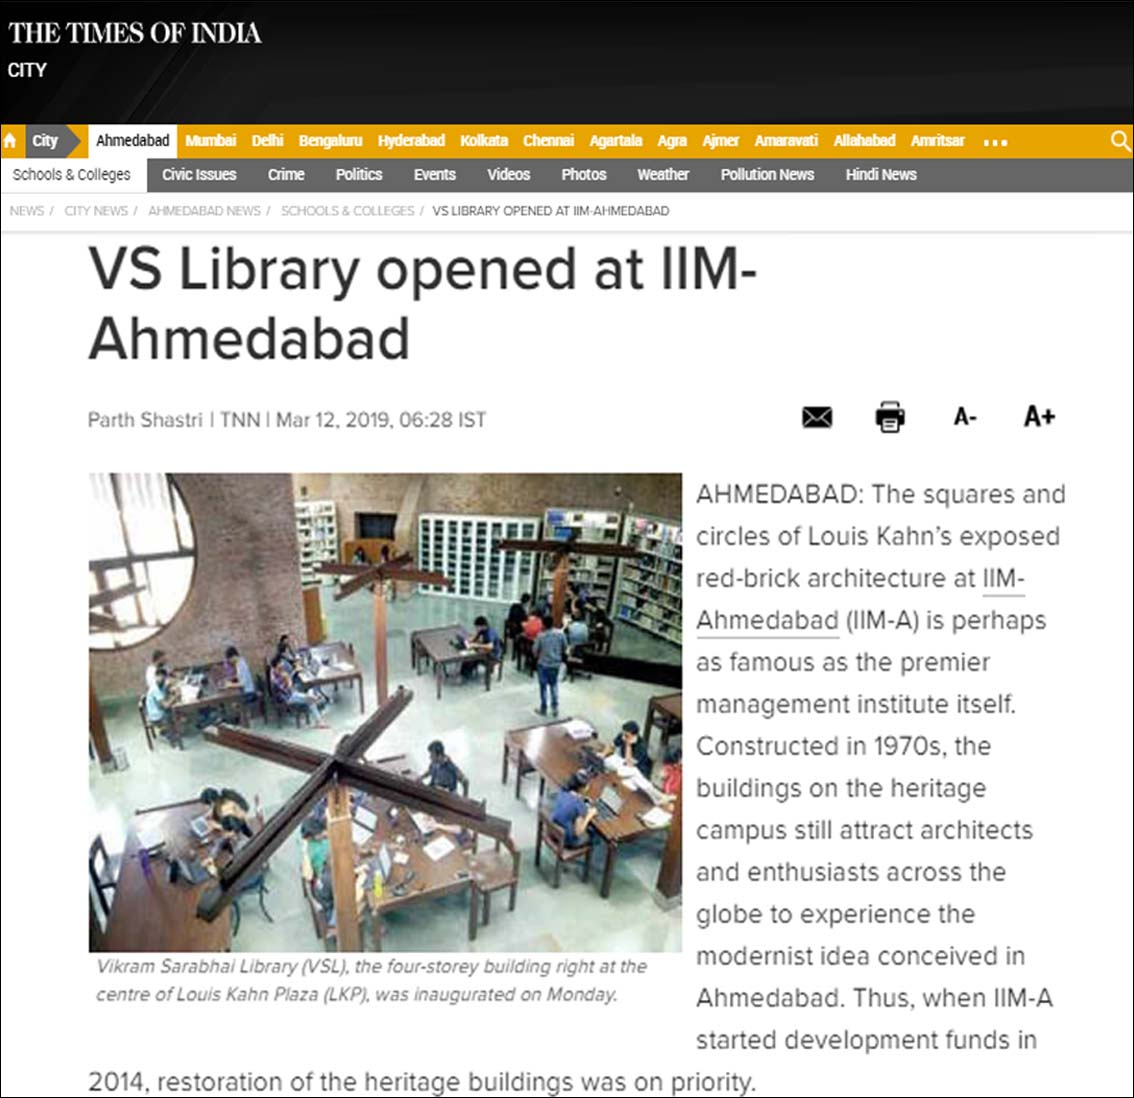 VS Library opened at IIM Ahmedabad, The Time of India - March 2019